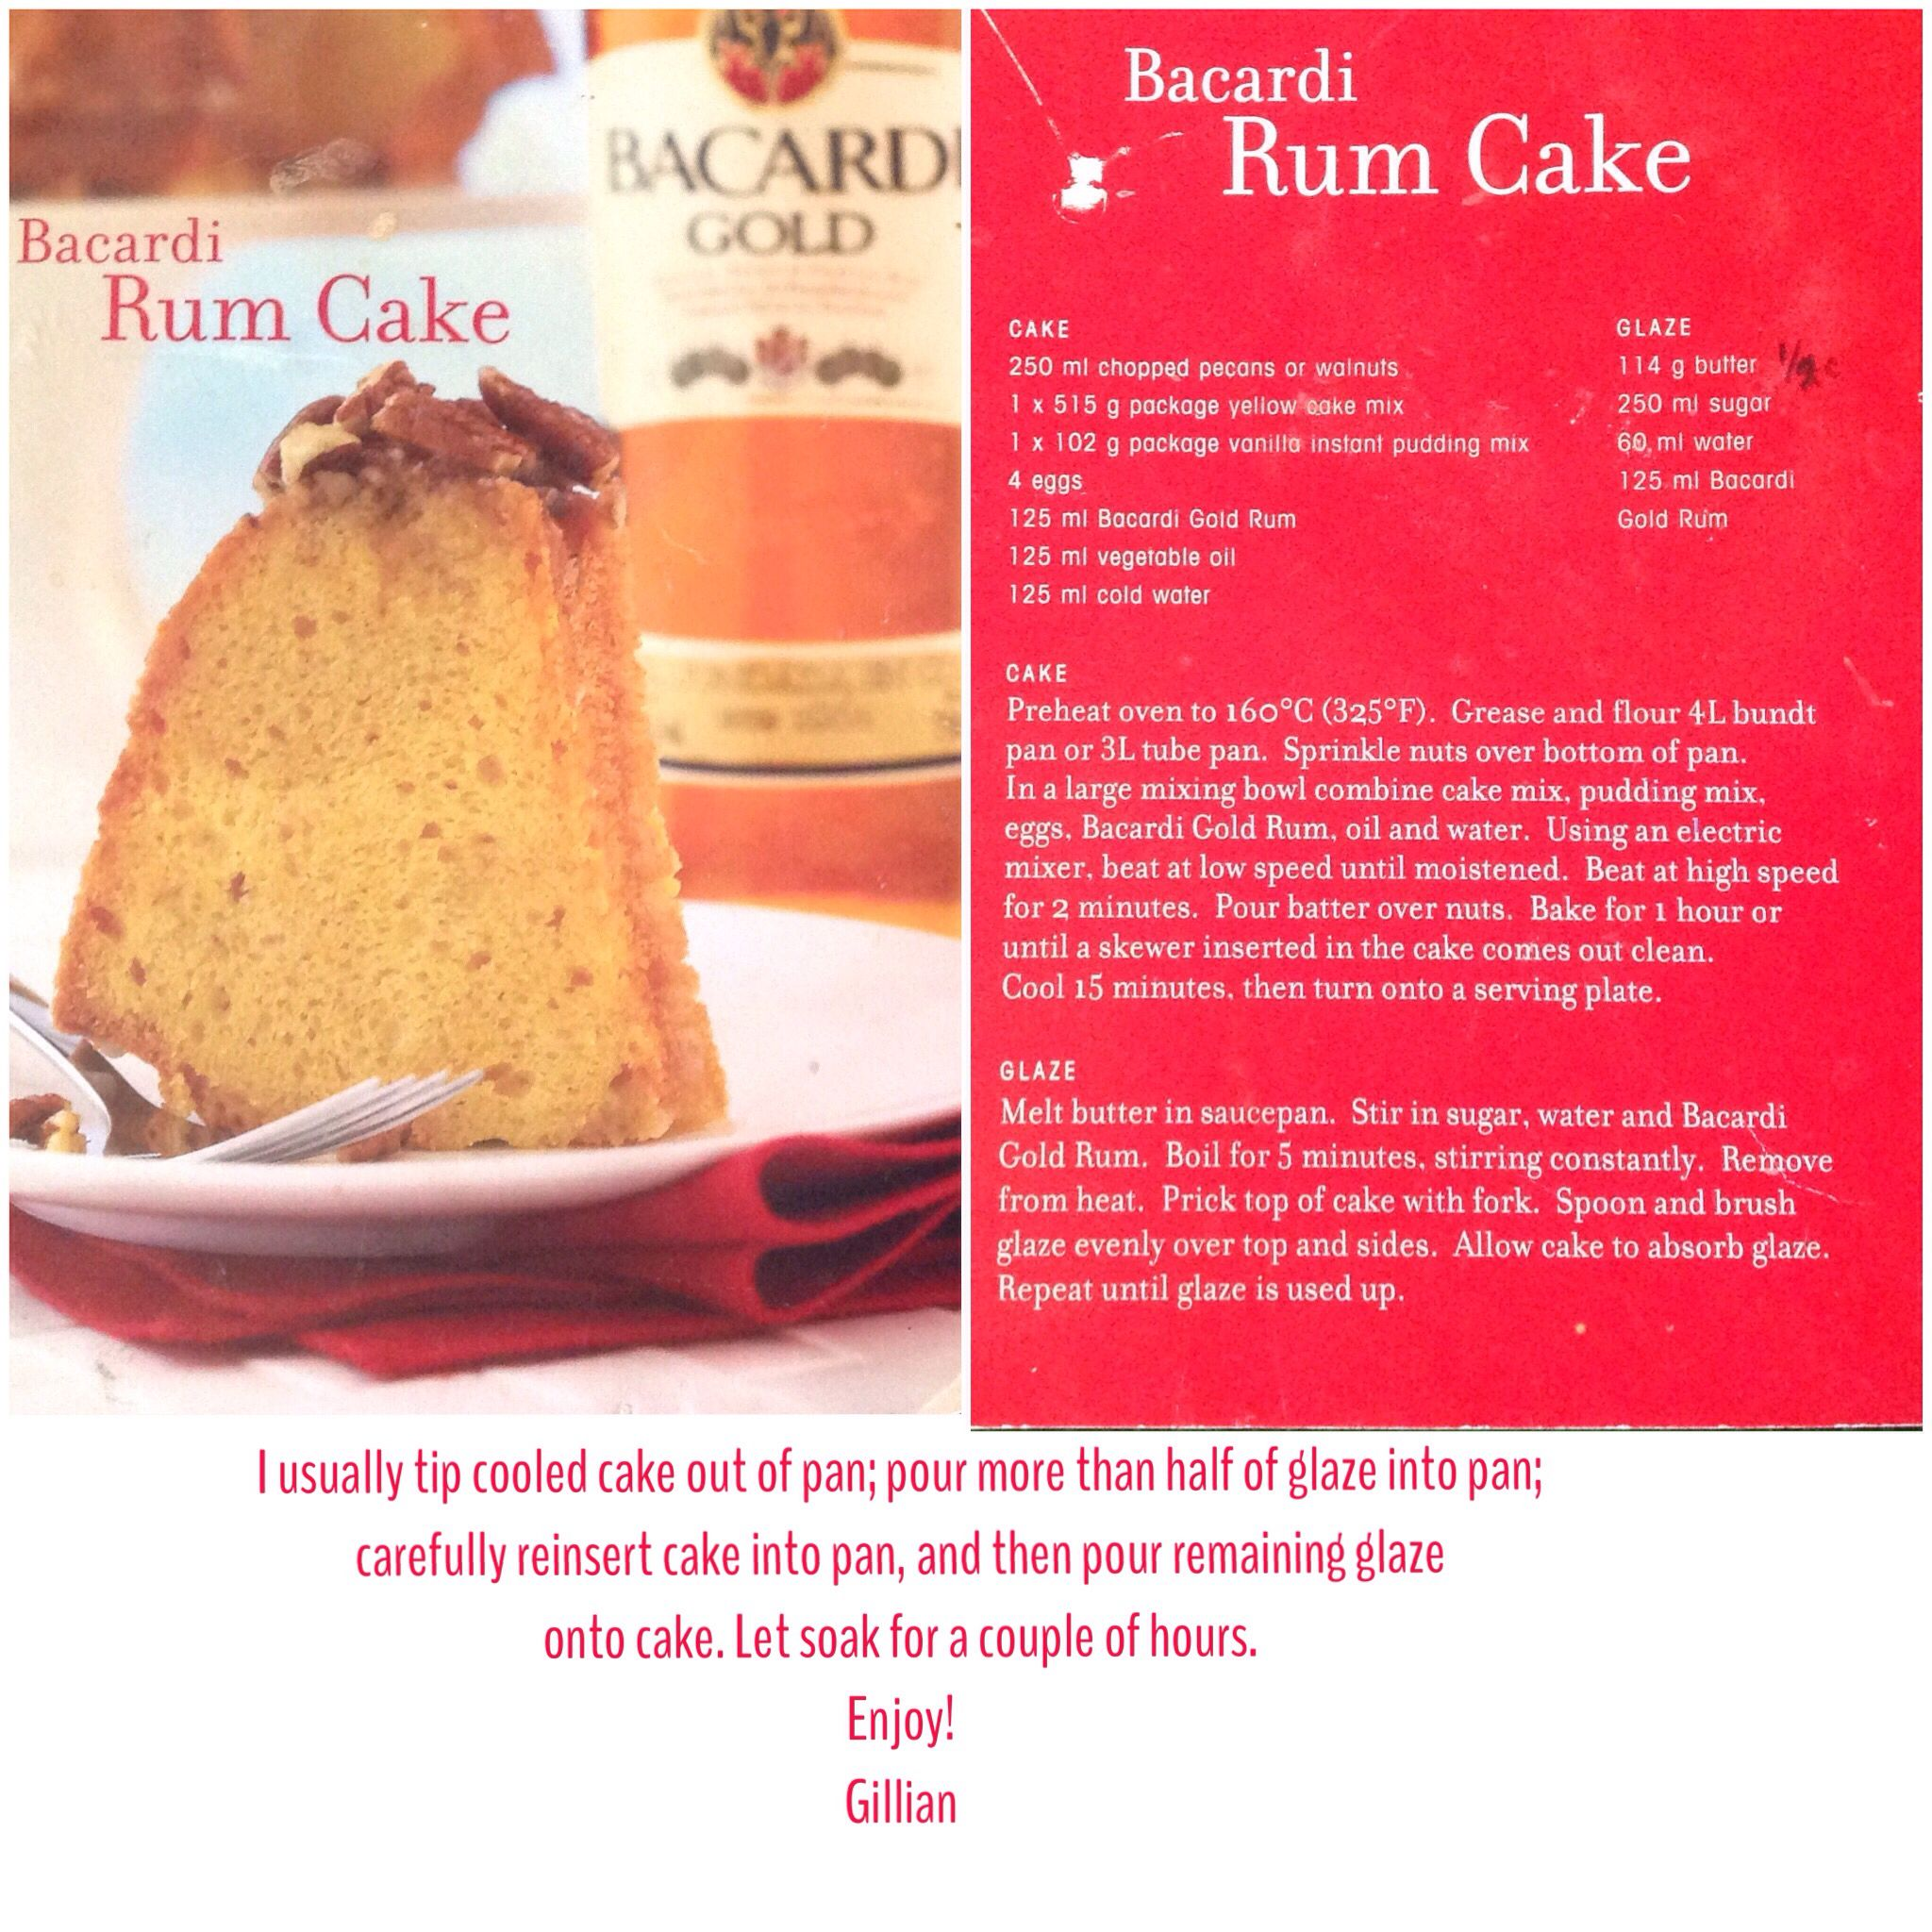 Original Bacardi Gold Rum Cake Recipe